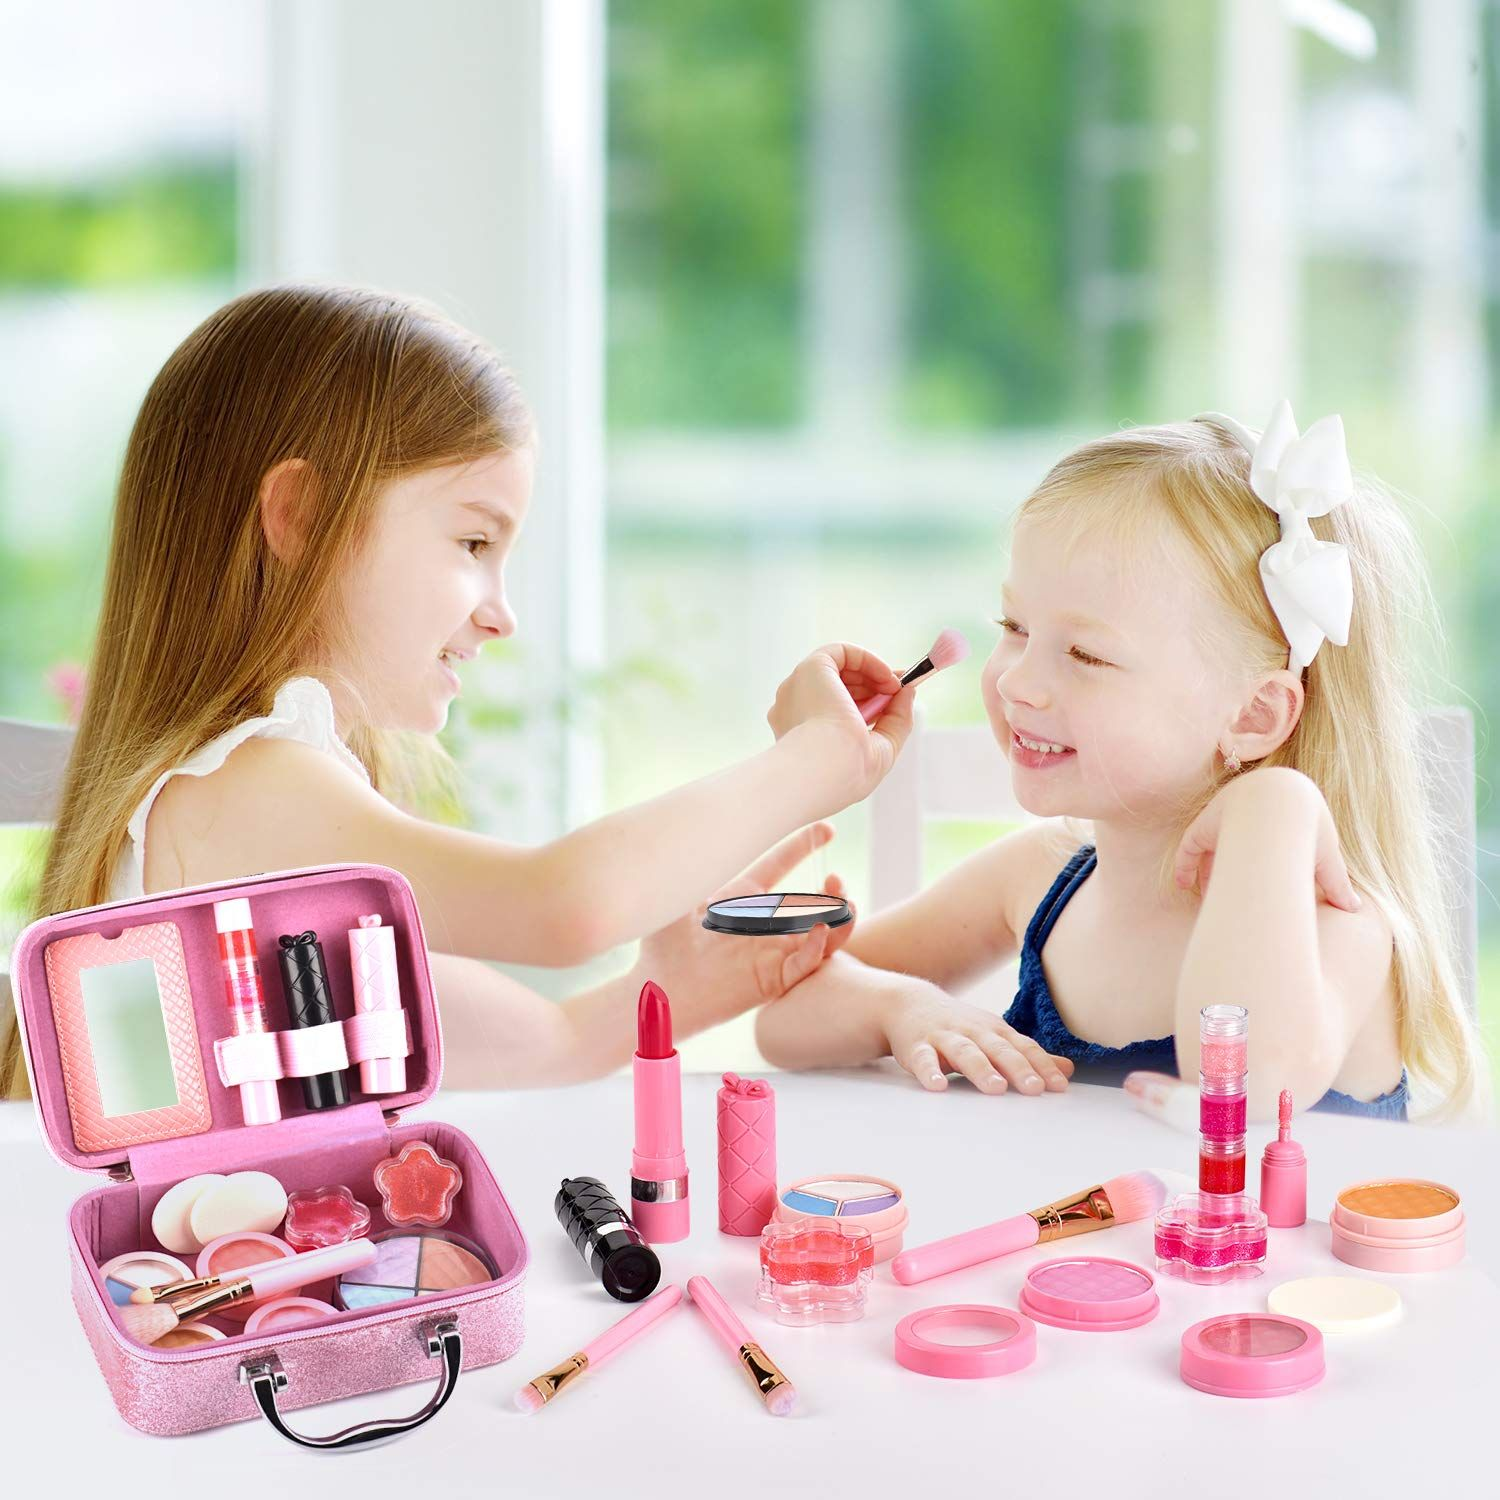 AstarX Makeup Toys for Kids, Real Washable Cosmetics Safe